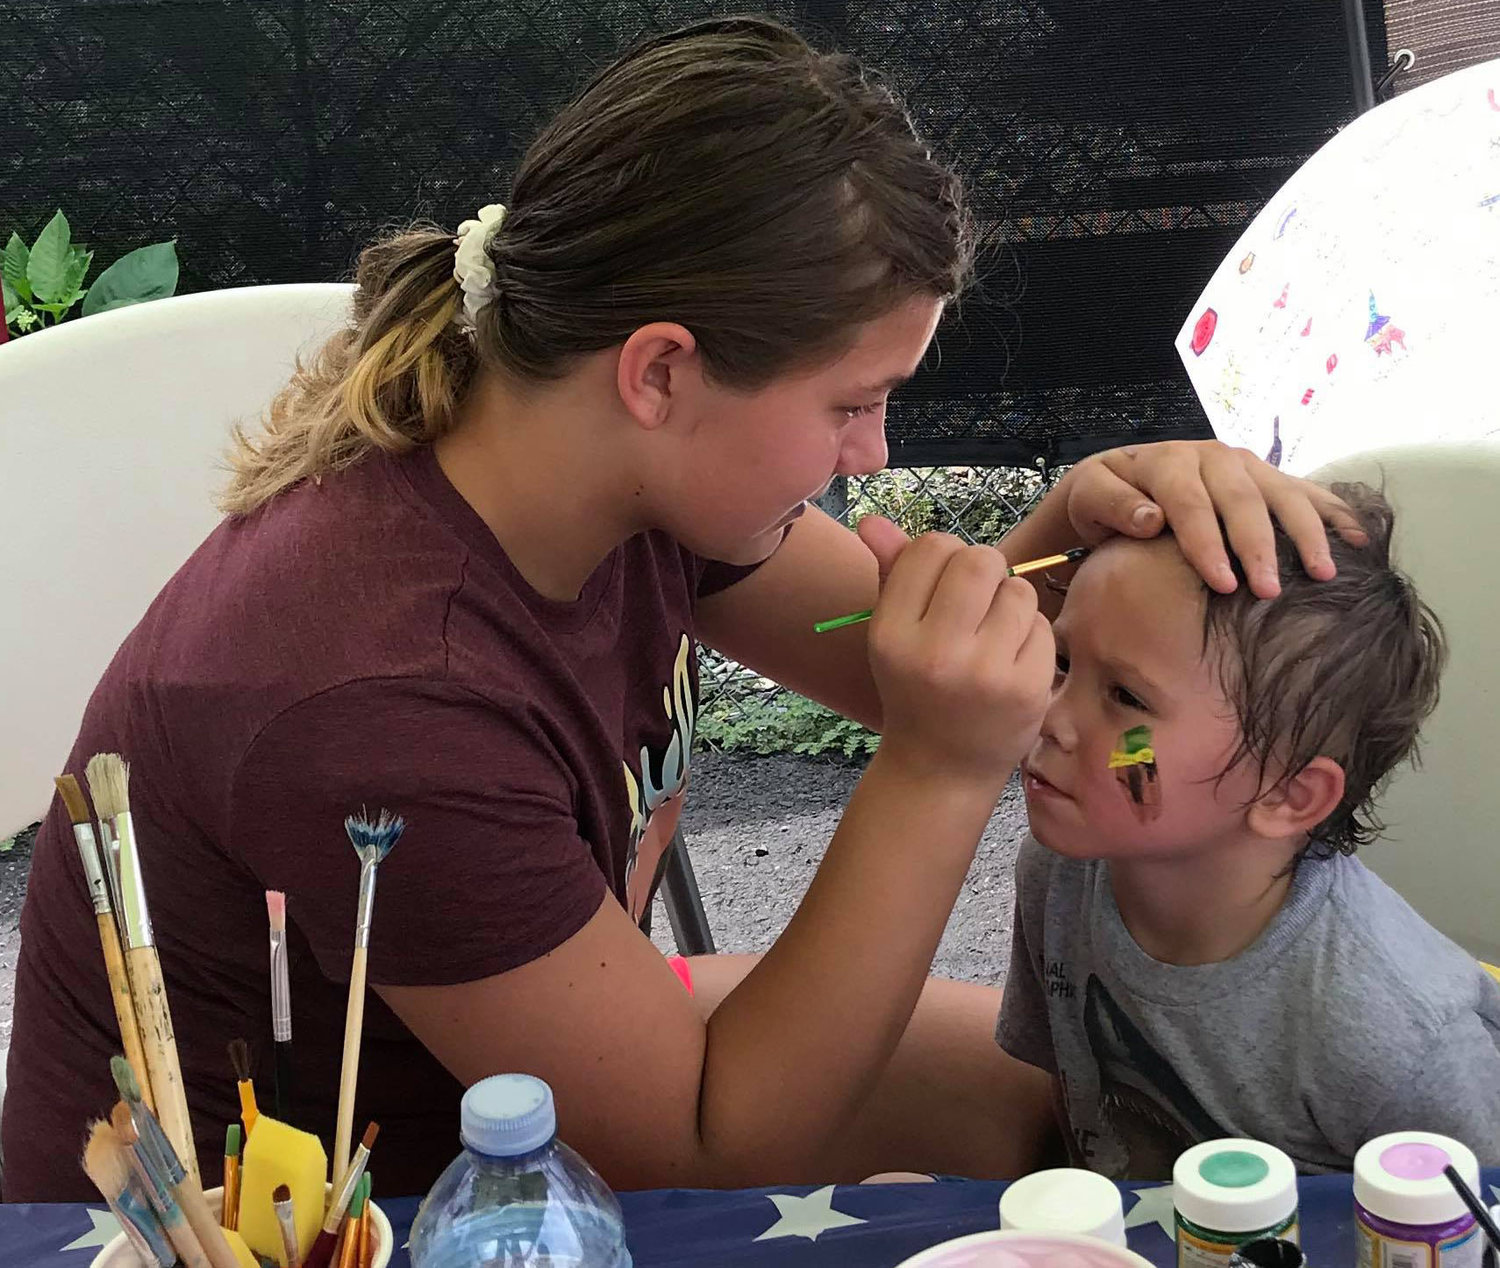 Face painting was one of many activities available to children at the first Freedom Community Festival held by the Middletown VFW Post No. 1620 Auxiliary on Aug. 17.